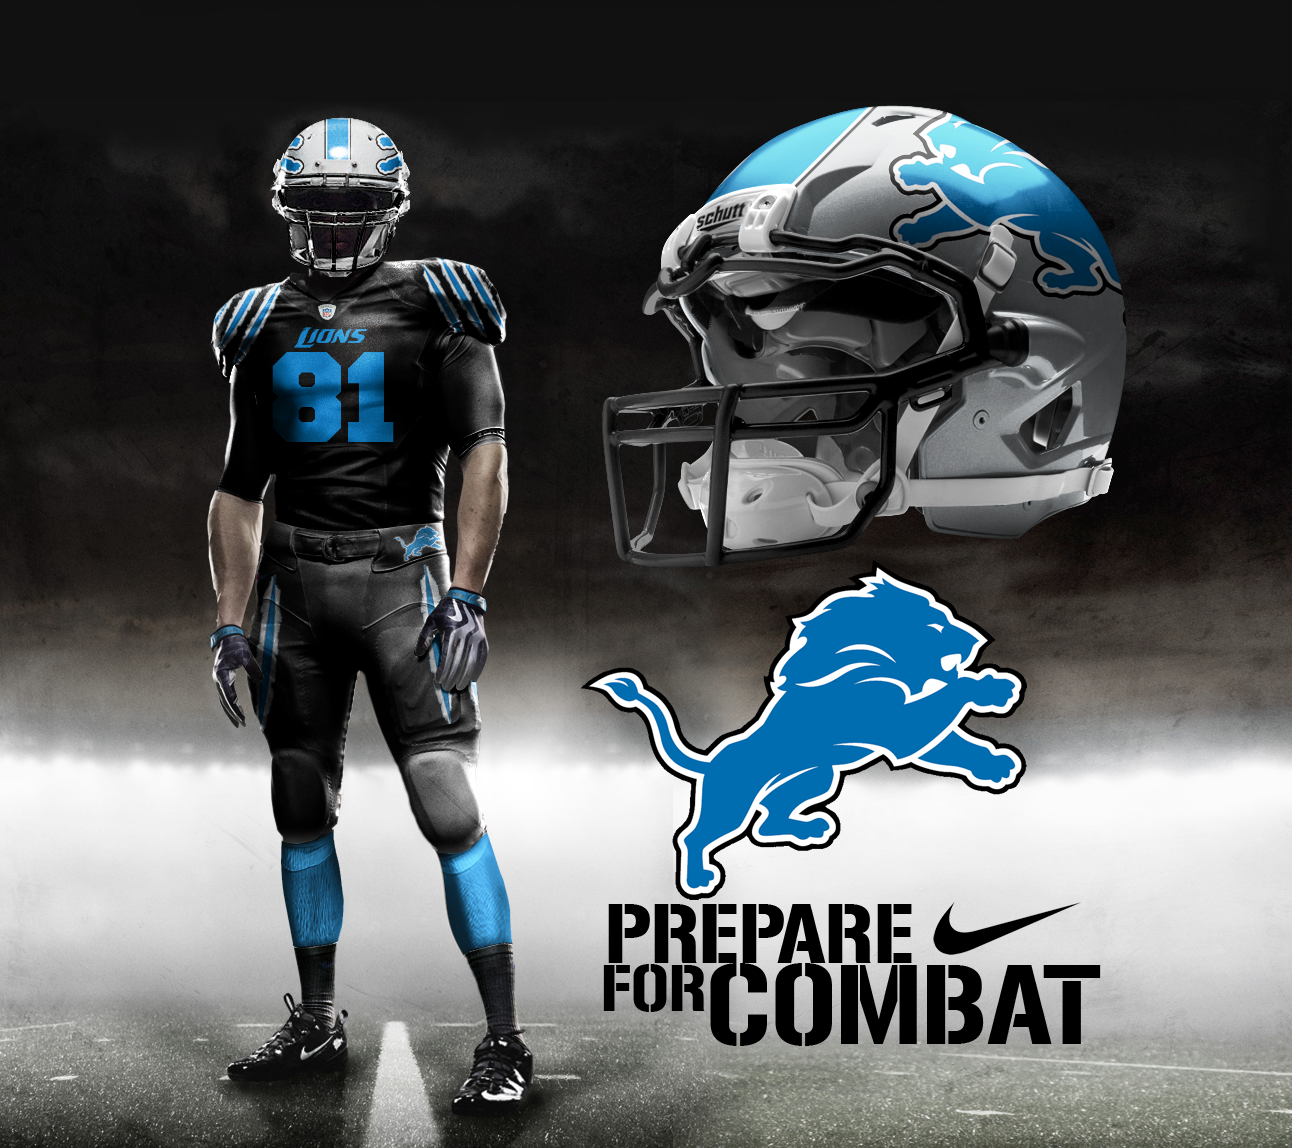 High Quality Detroit Lions Wallpapers, High Quality, BsnSCB.com